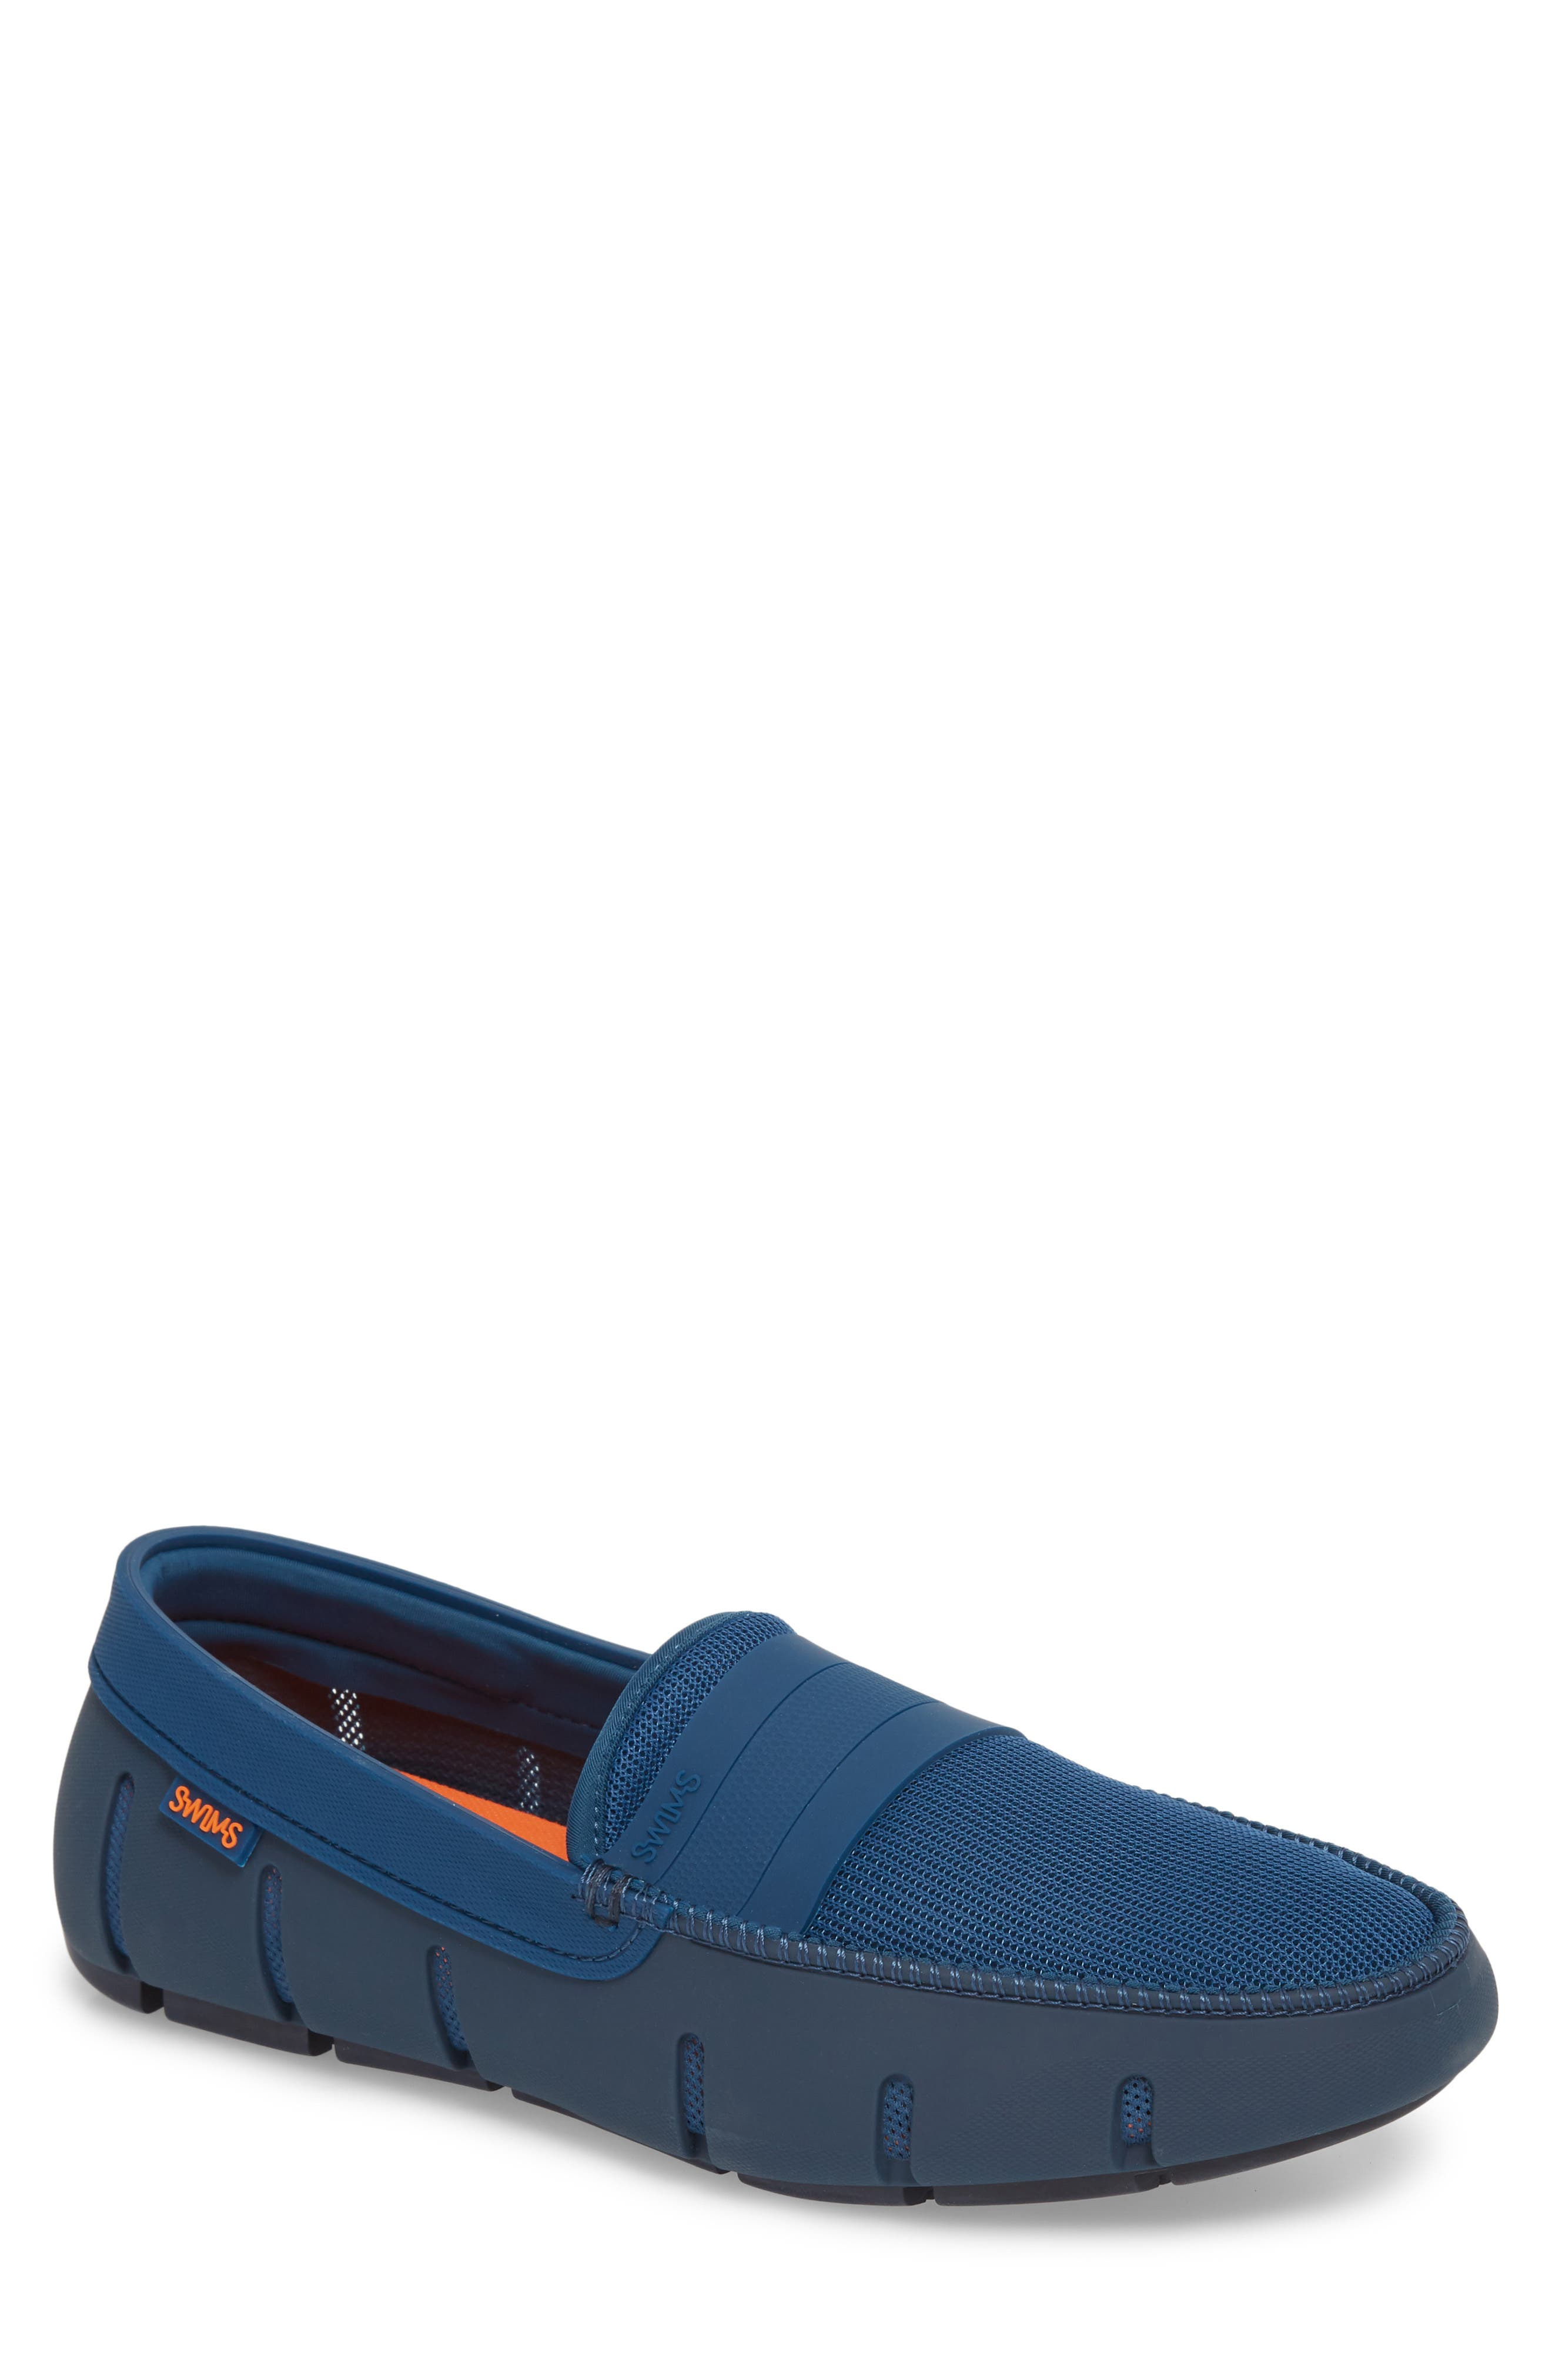 Swims Stride Banded Loafer, Blue